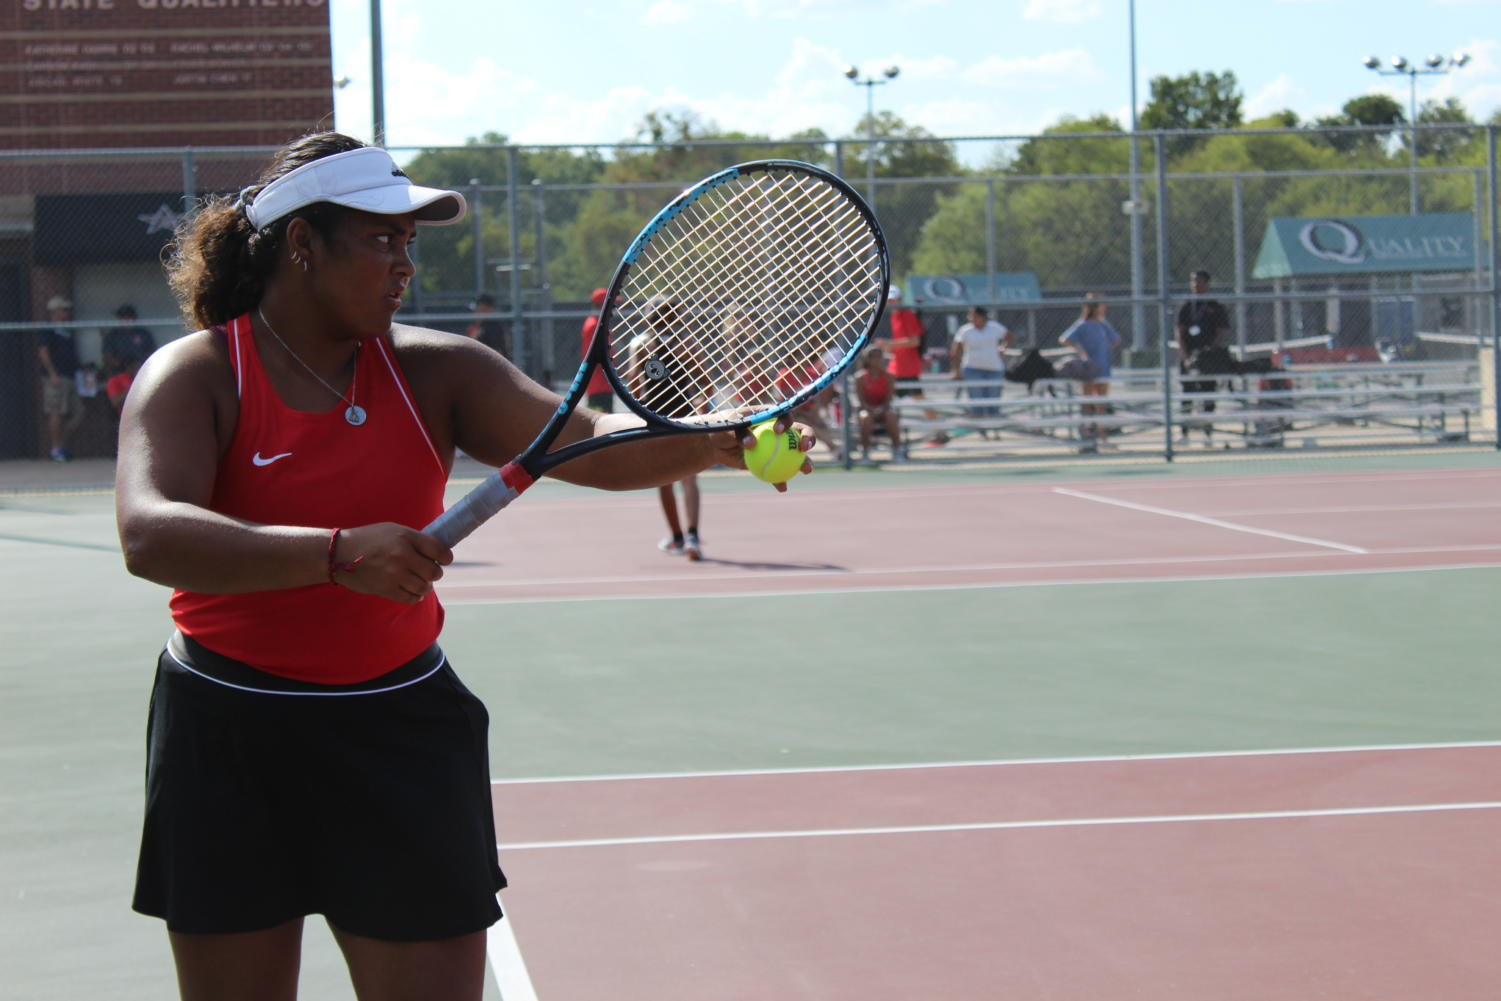 Coppell senior Ruchika Khowala prepares to serve in a District 6-6A match against Lewisville on Sept. 10 at the CHS Tennis Center. Coppell tennis was recently ranked fifth in Class 6A and first in Region I by Texas Tennis Coaches Association (TTCA). Photo by Anthony Onalaja